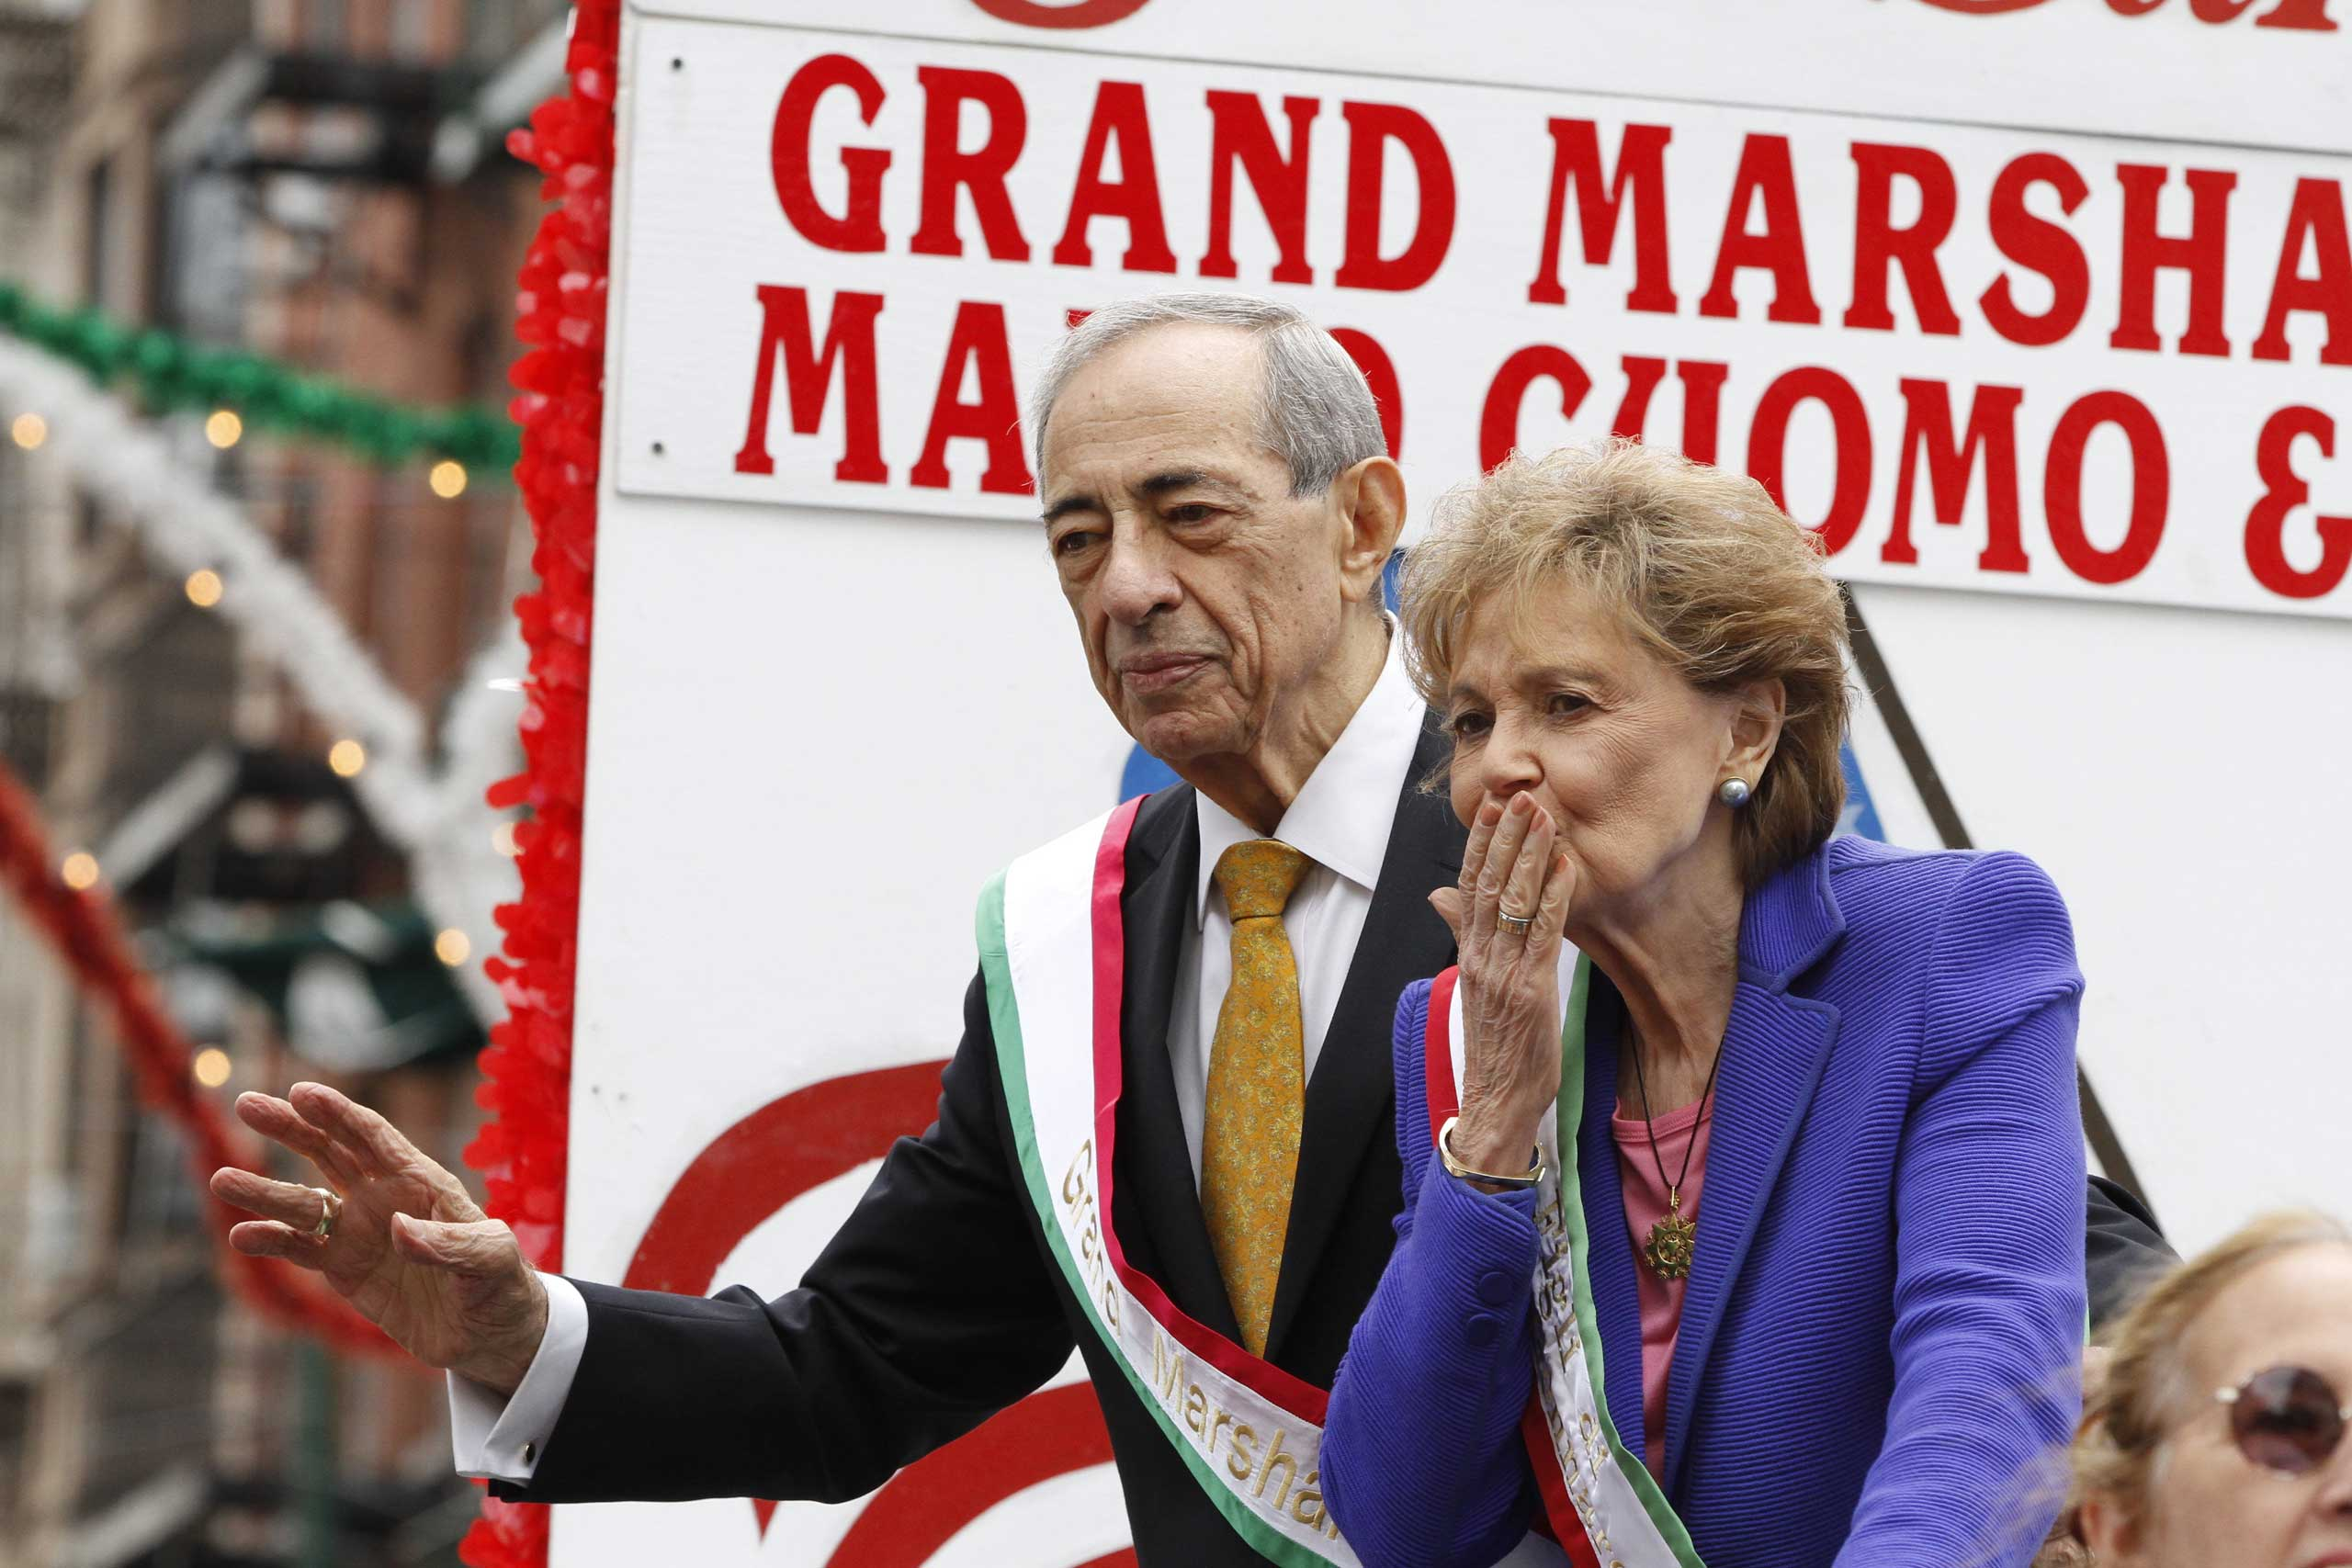 Former New York Governor Mario Cuomo, accompanied by his wife Matilda Cuomo, serves as the Grand Marshal of the San Gennaro Grand Procession, kicking off the 87th annual San Gennaro Festival in the Little Italy section of New York City on Sept. 14, 2013.